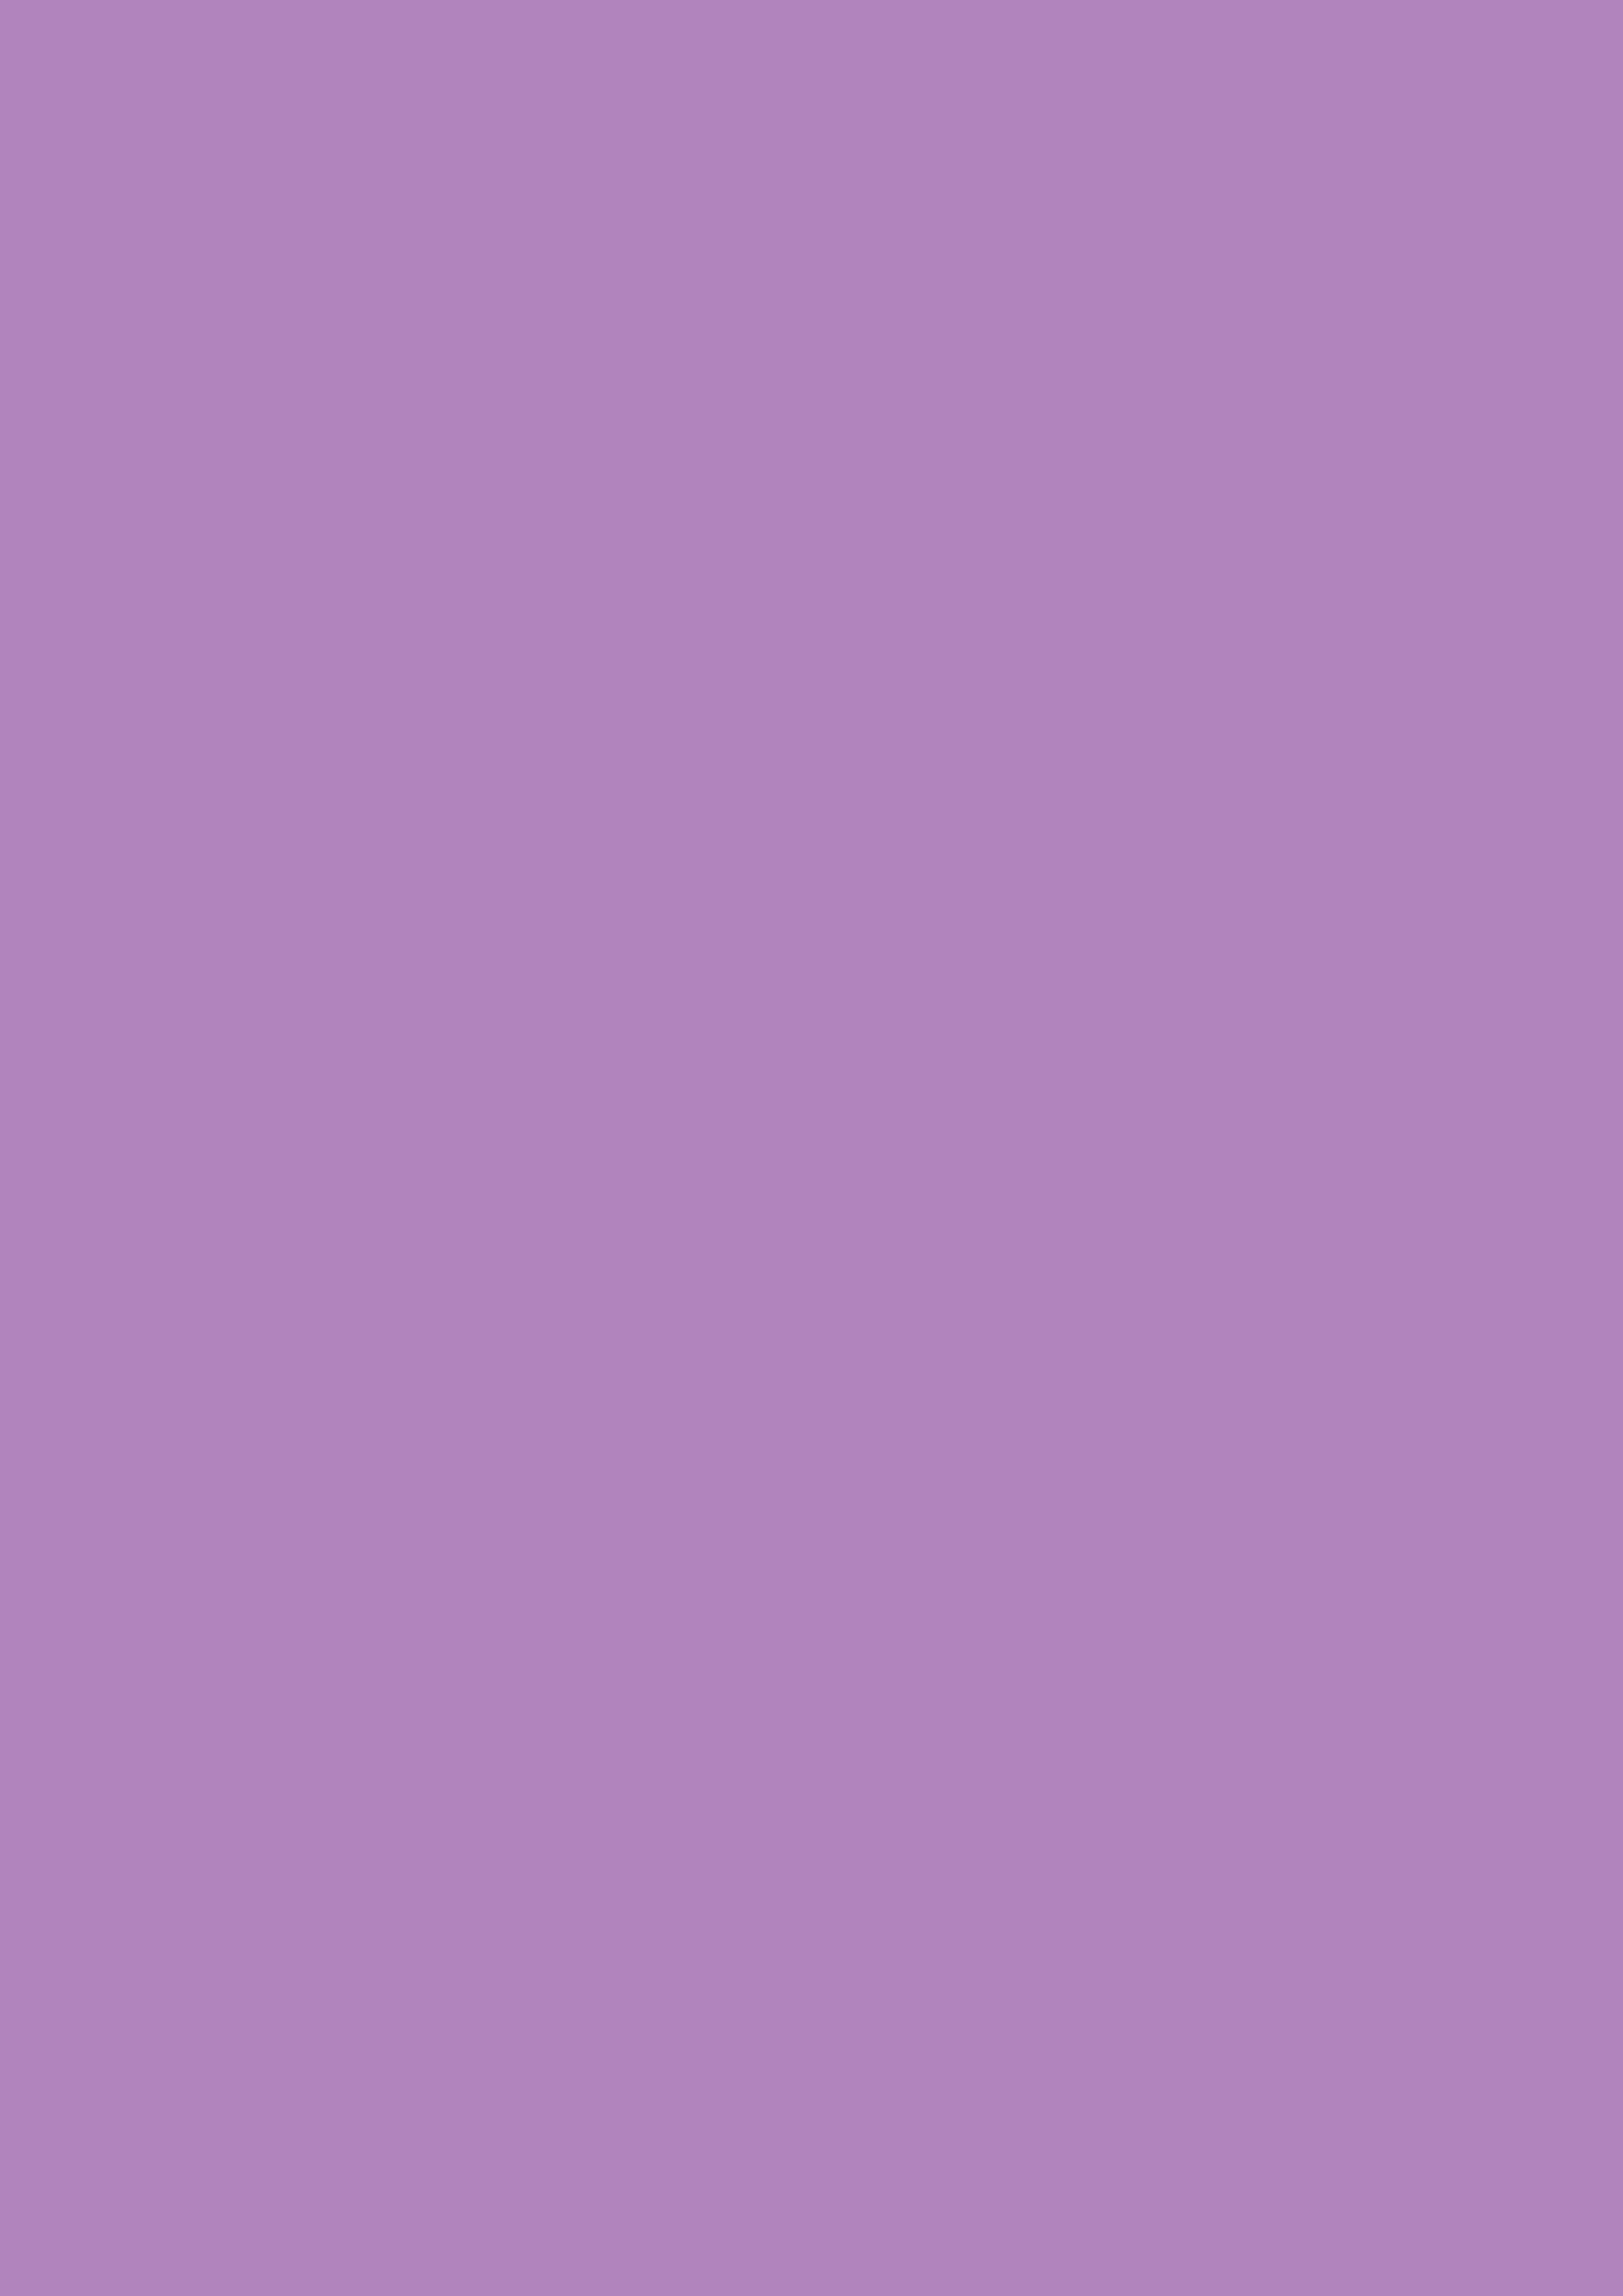 2480x3508 African Violet Solid Color Background